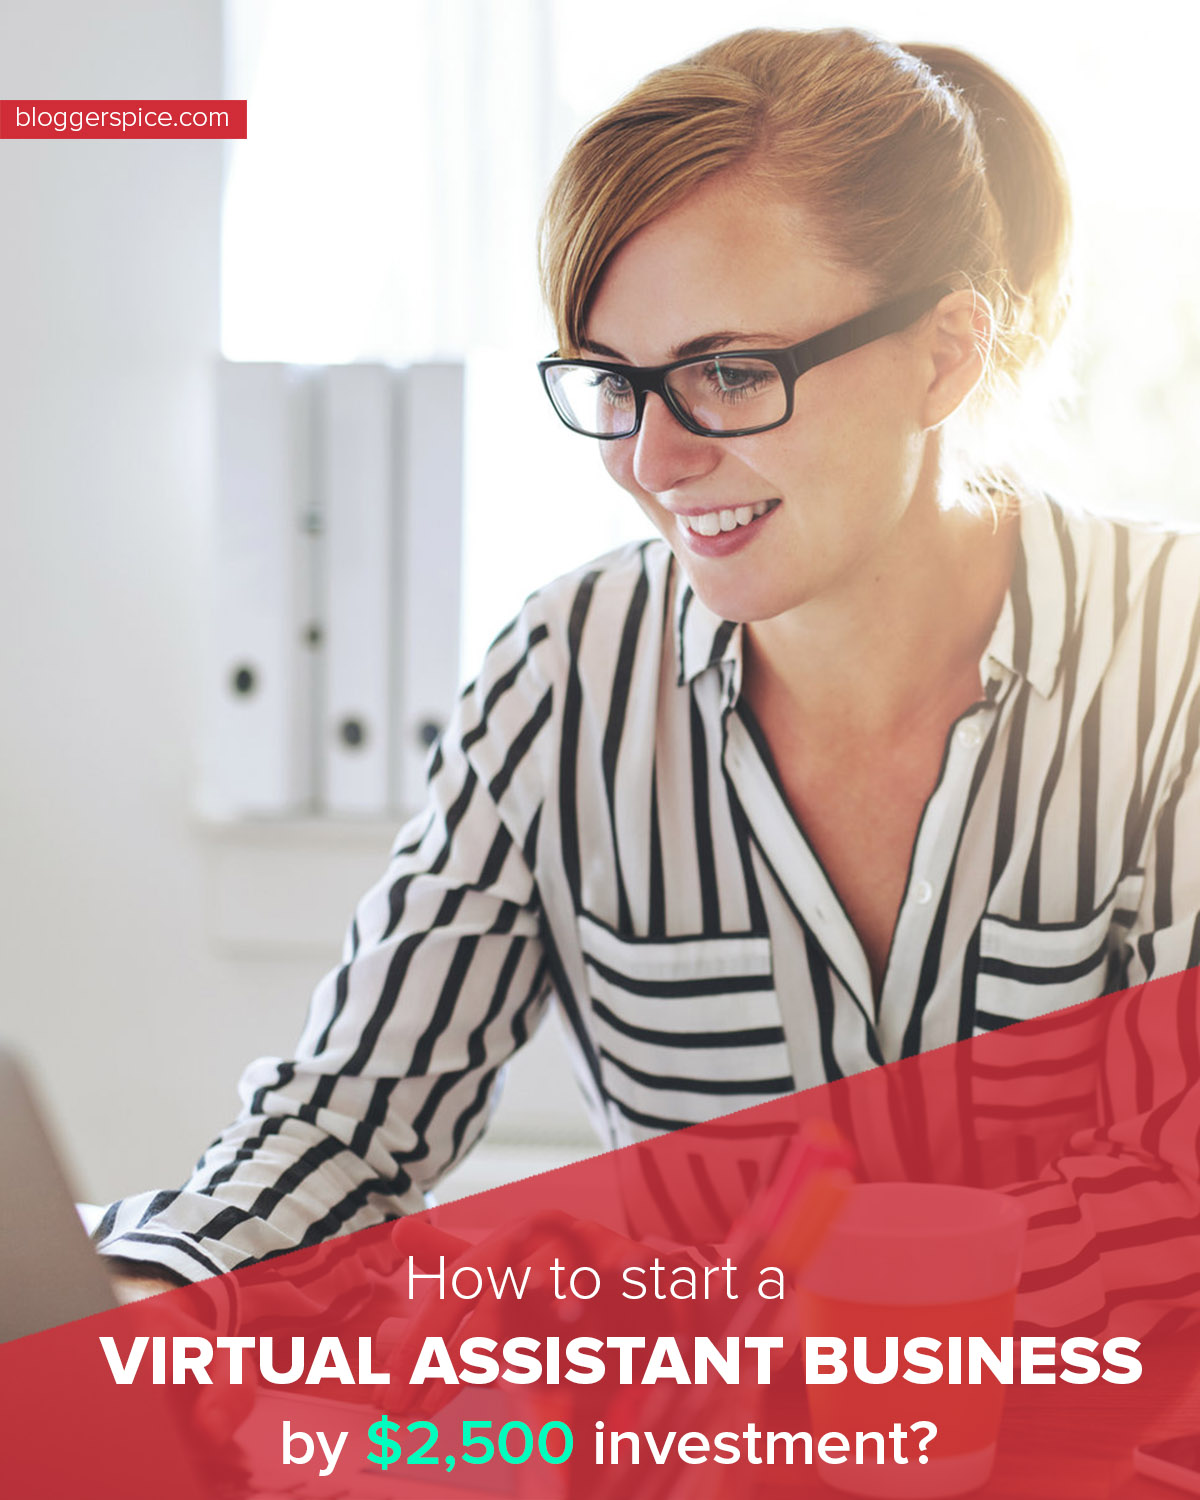 10 Tips for Starting a Virtual Assistant Business